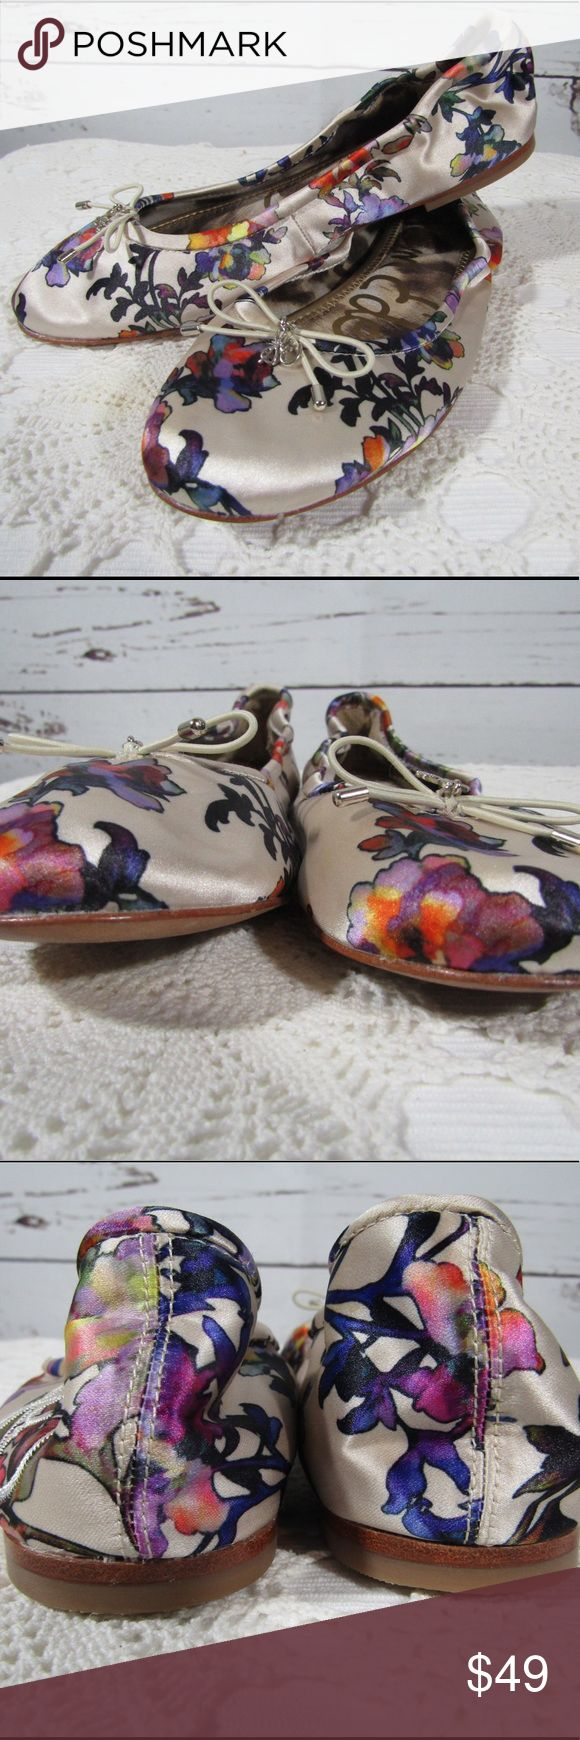 "Sam Edelman ""Felicia"" satin floral ballet flats Sam Edelman 